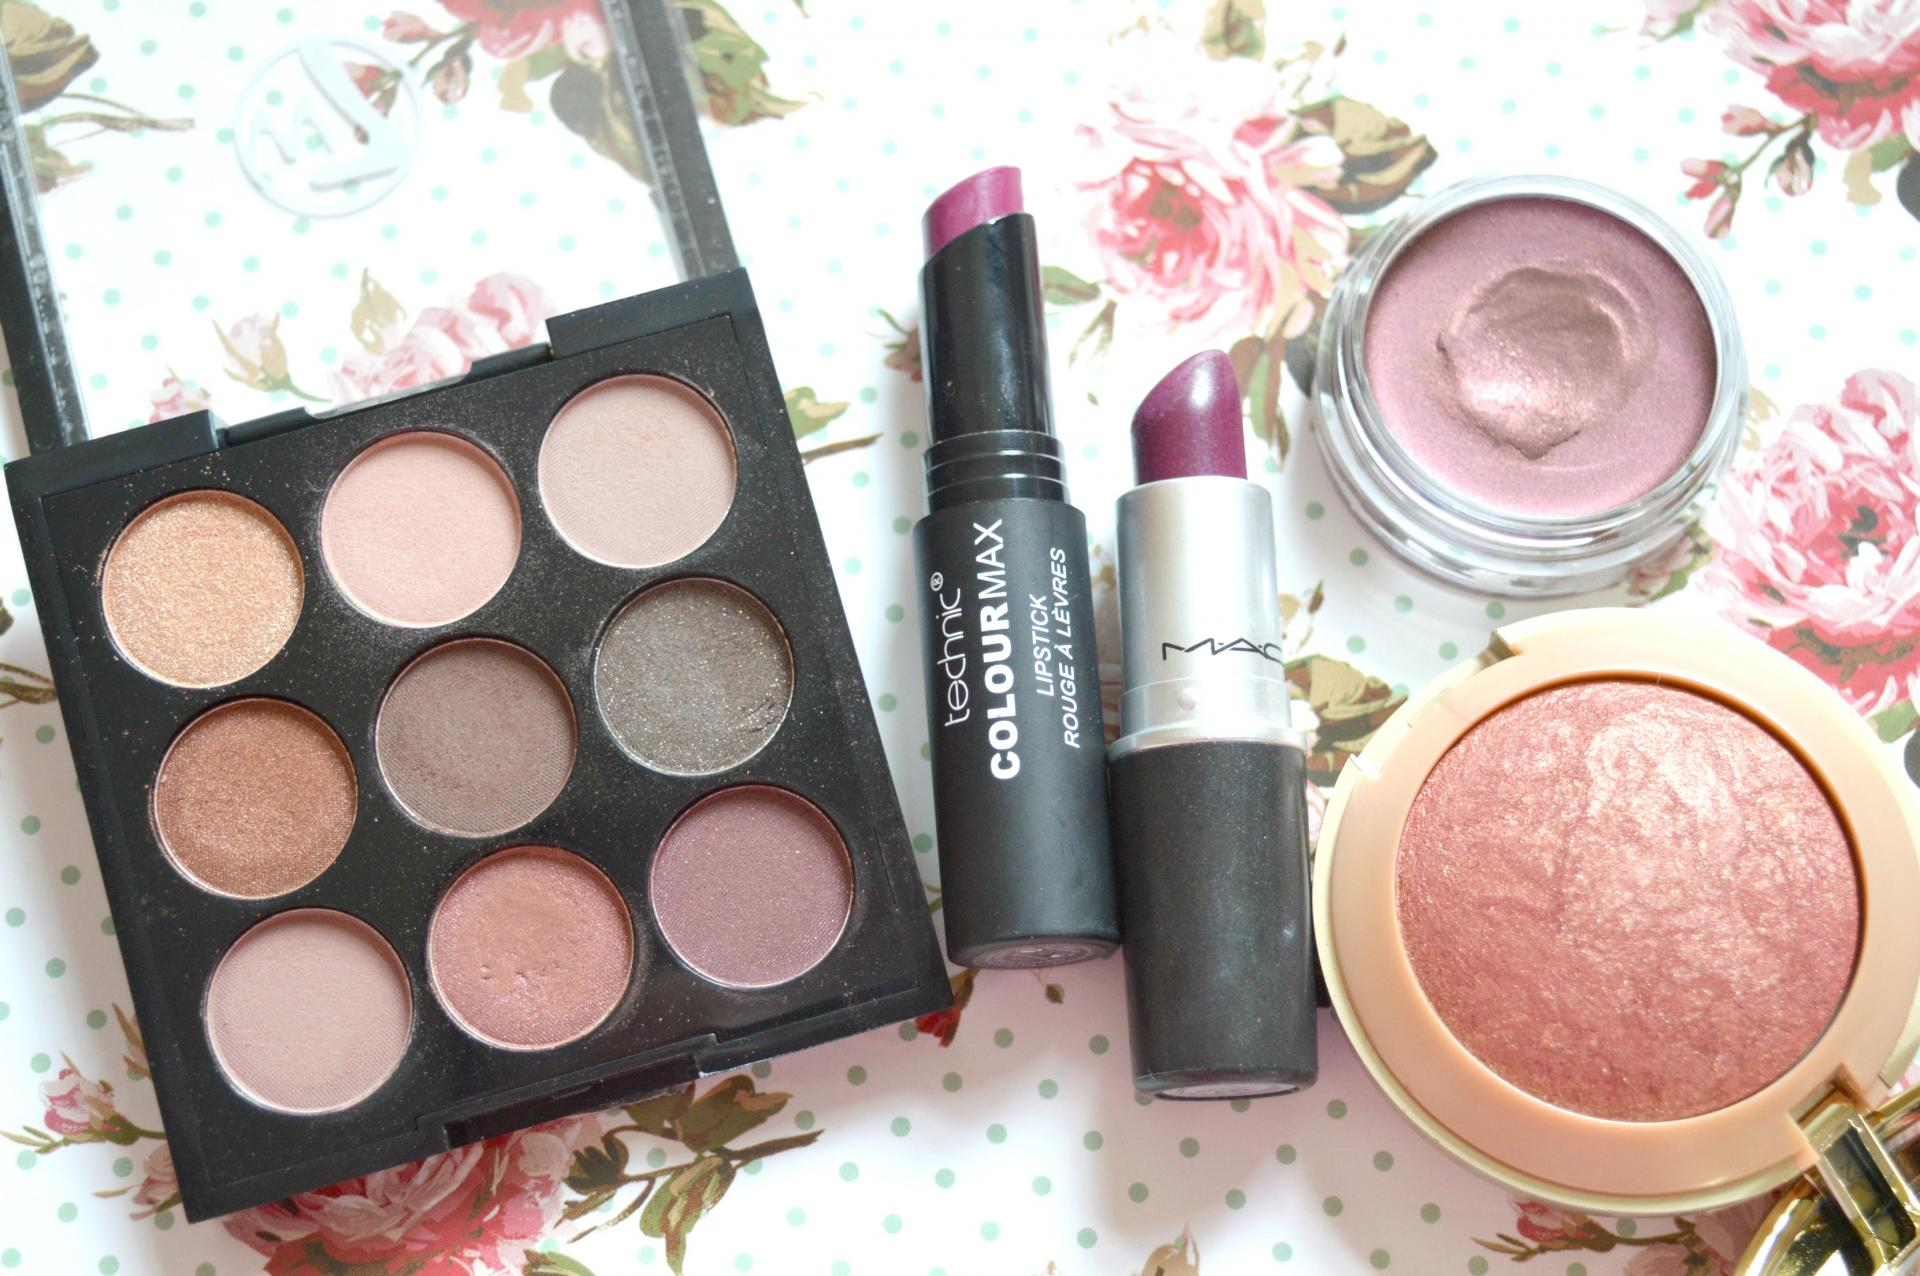 5 Really Awesome Makeup Products For Autumn   W7 The Naughty Nine Mid Summer Nights palette, Technic Colour Max Lipstick in Deep Purple, MAC Lipstick in Rebel, Bourjois 24H Color Edition Cream To Powder Eyeshadow in Prune Nocturne and Milani Baked Blush in Red Vino